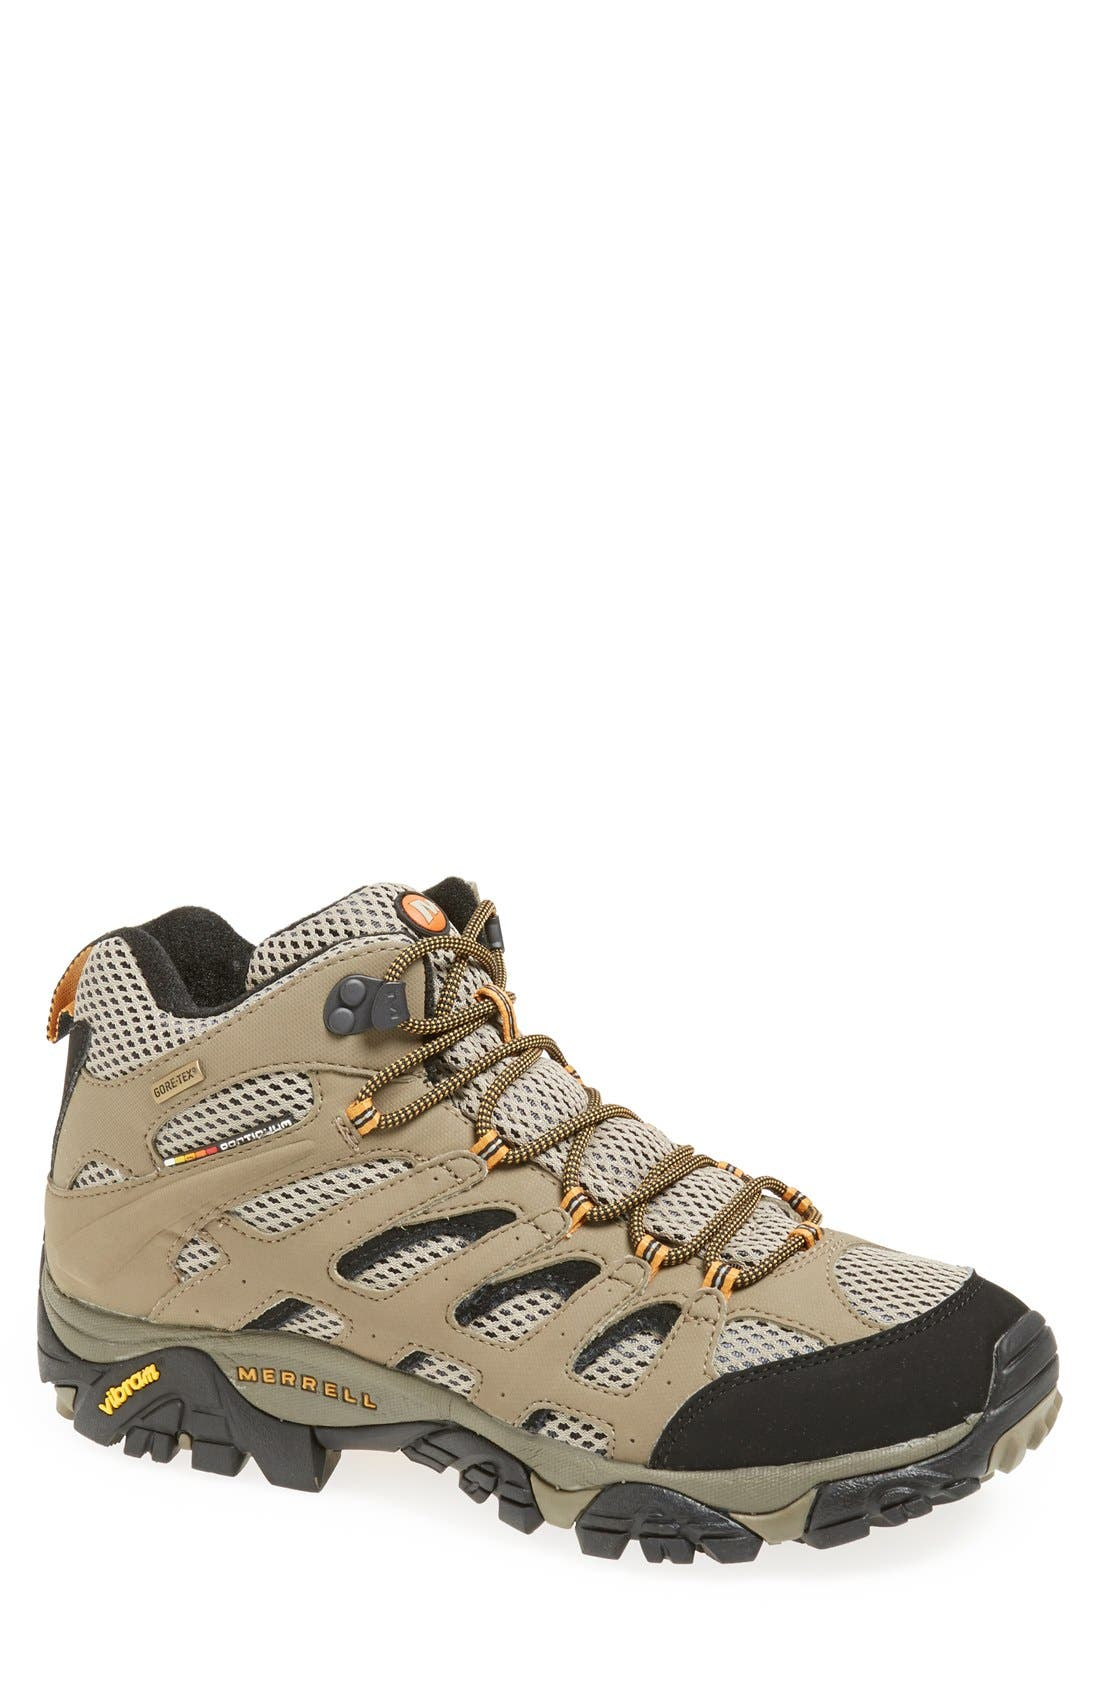 Alternate Image 1 Selected - Merrell 'Moab Mid Gore-Tex® XCR' Hiking Boot (Men) (Online Only)